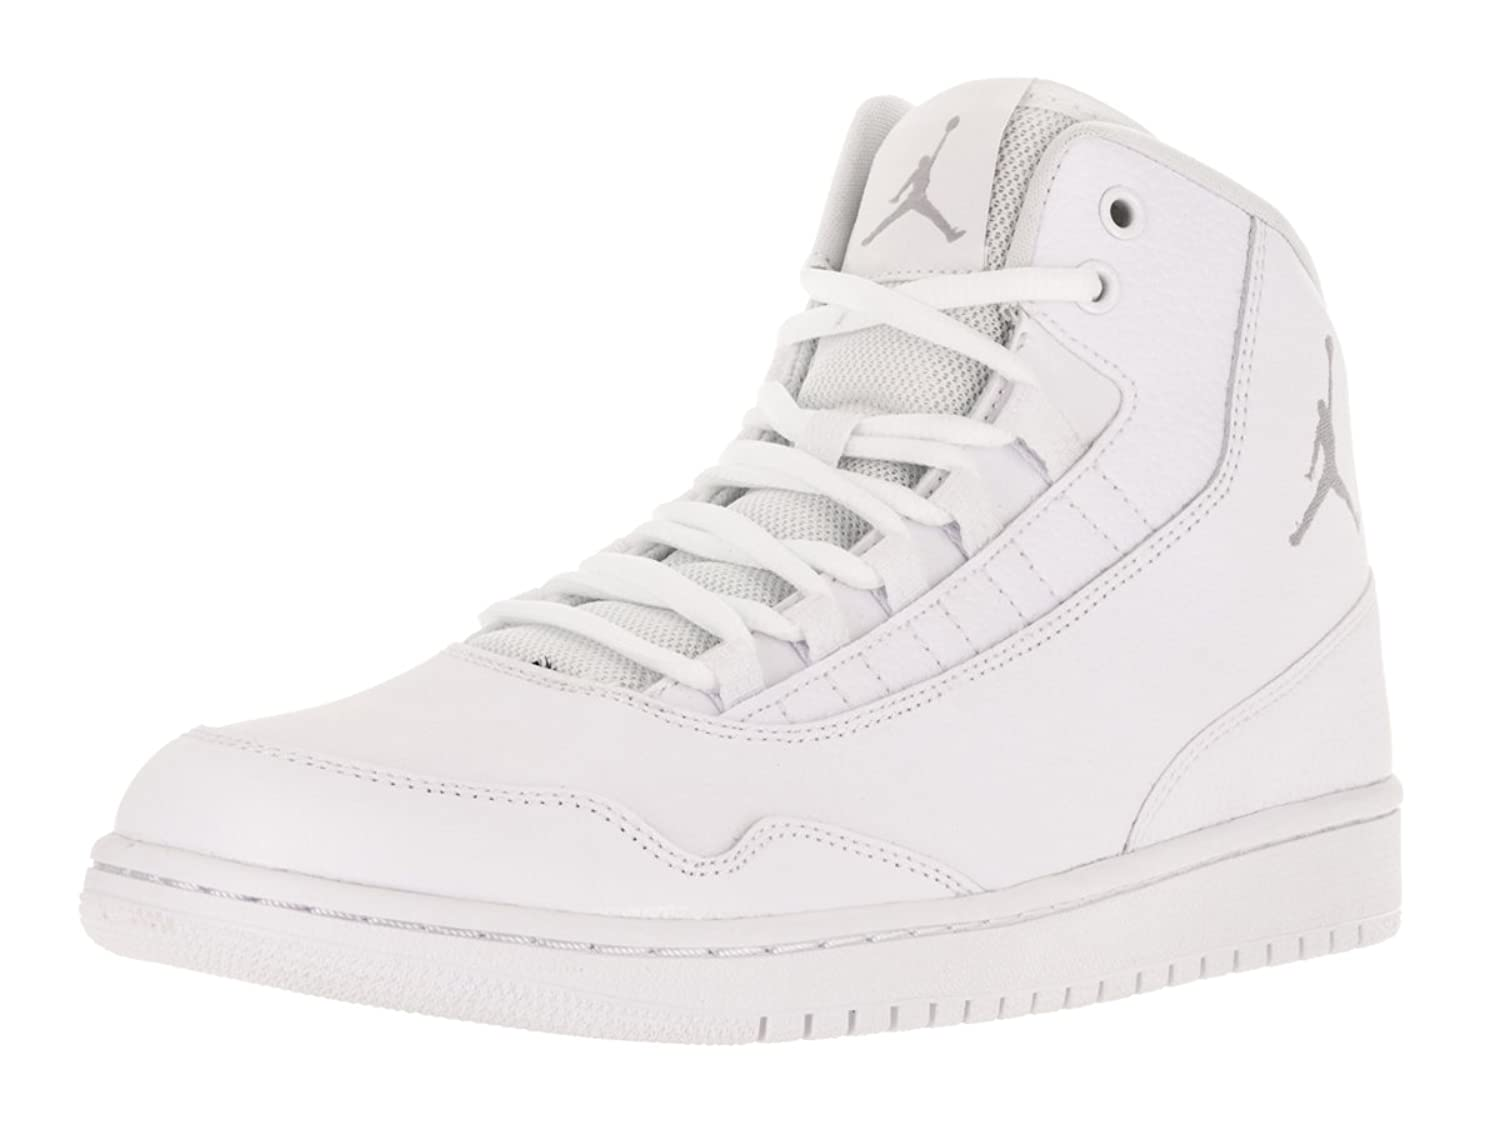 white jordans shoes for men